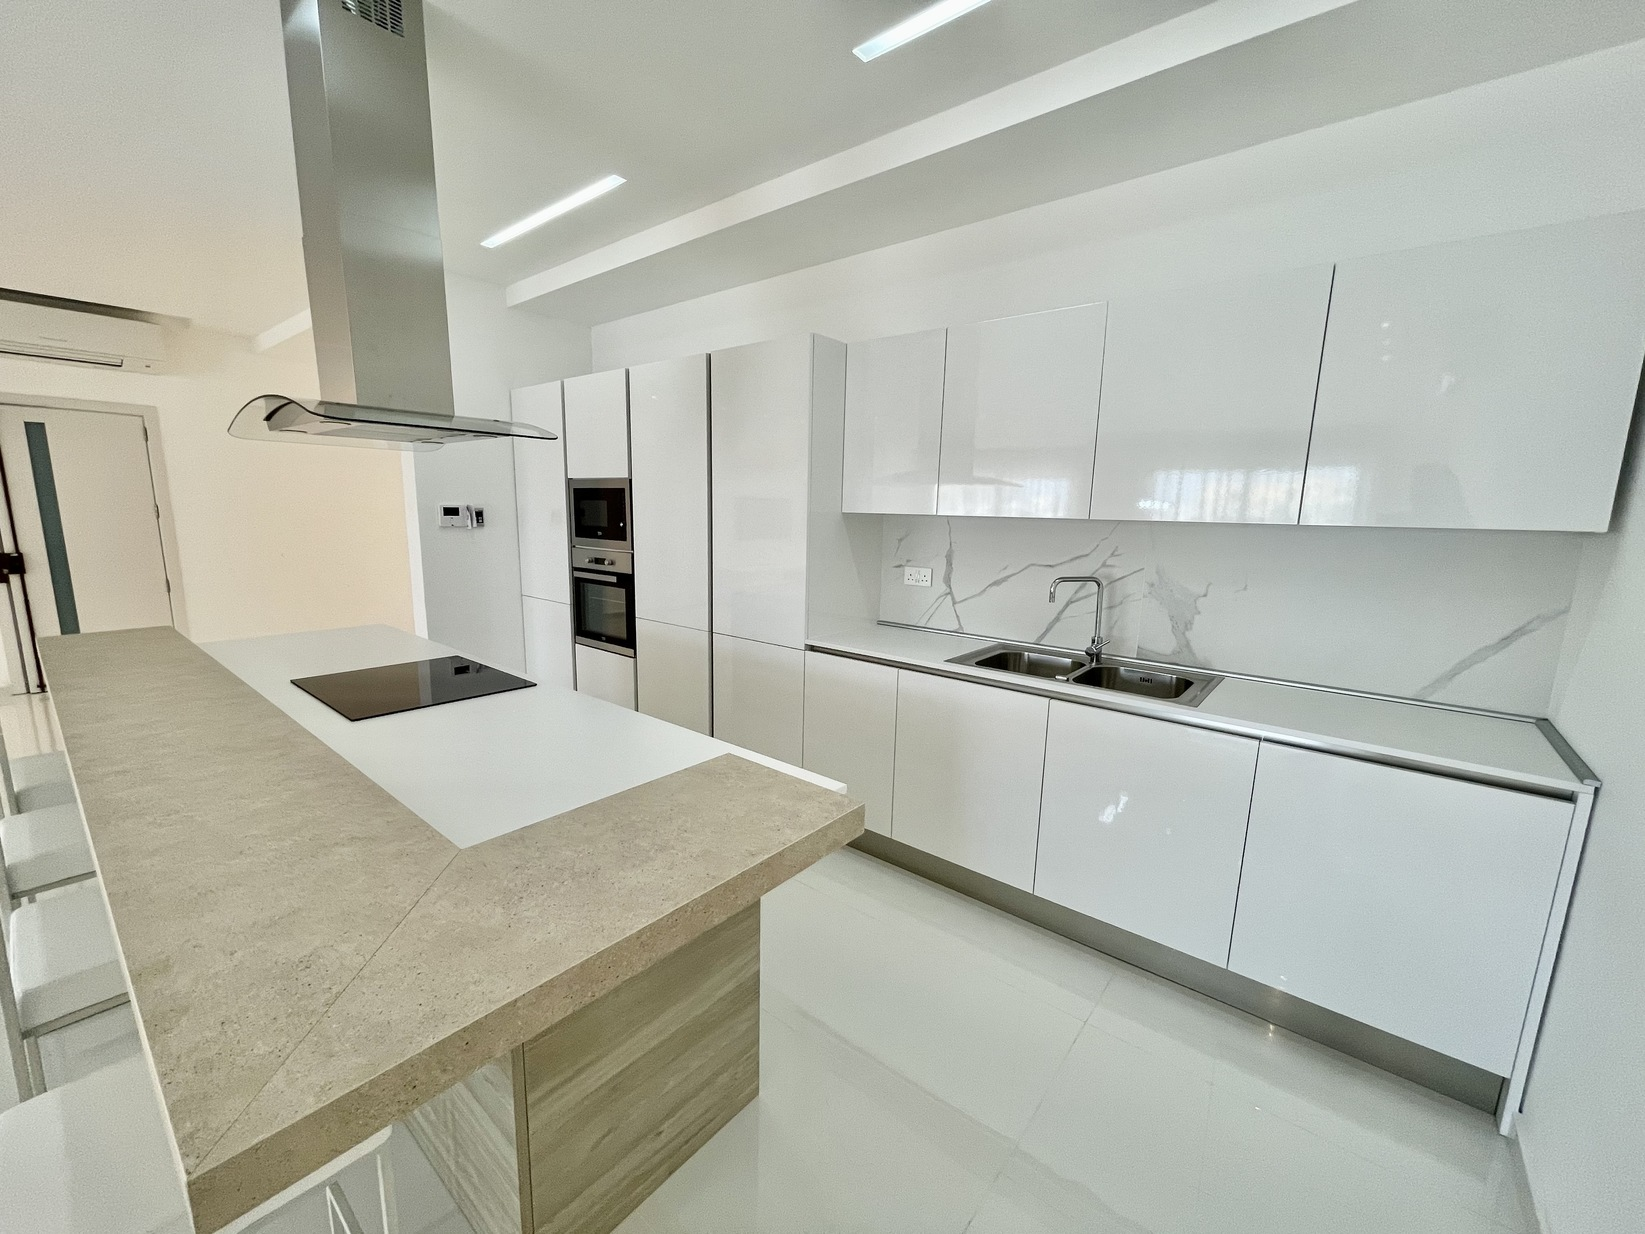 3 bed Apartment For Rent in Zejtun, Zejtun - thumb 10